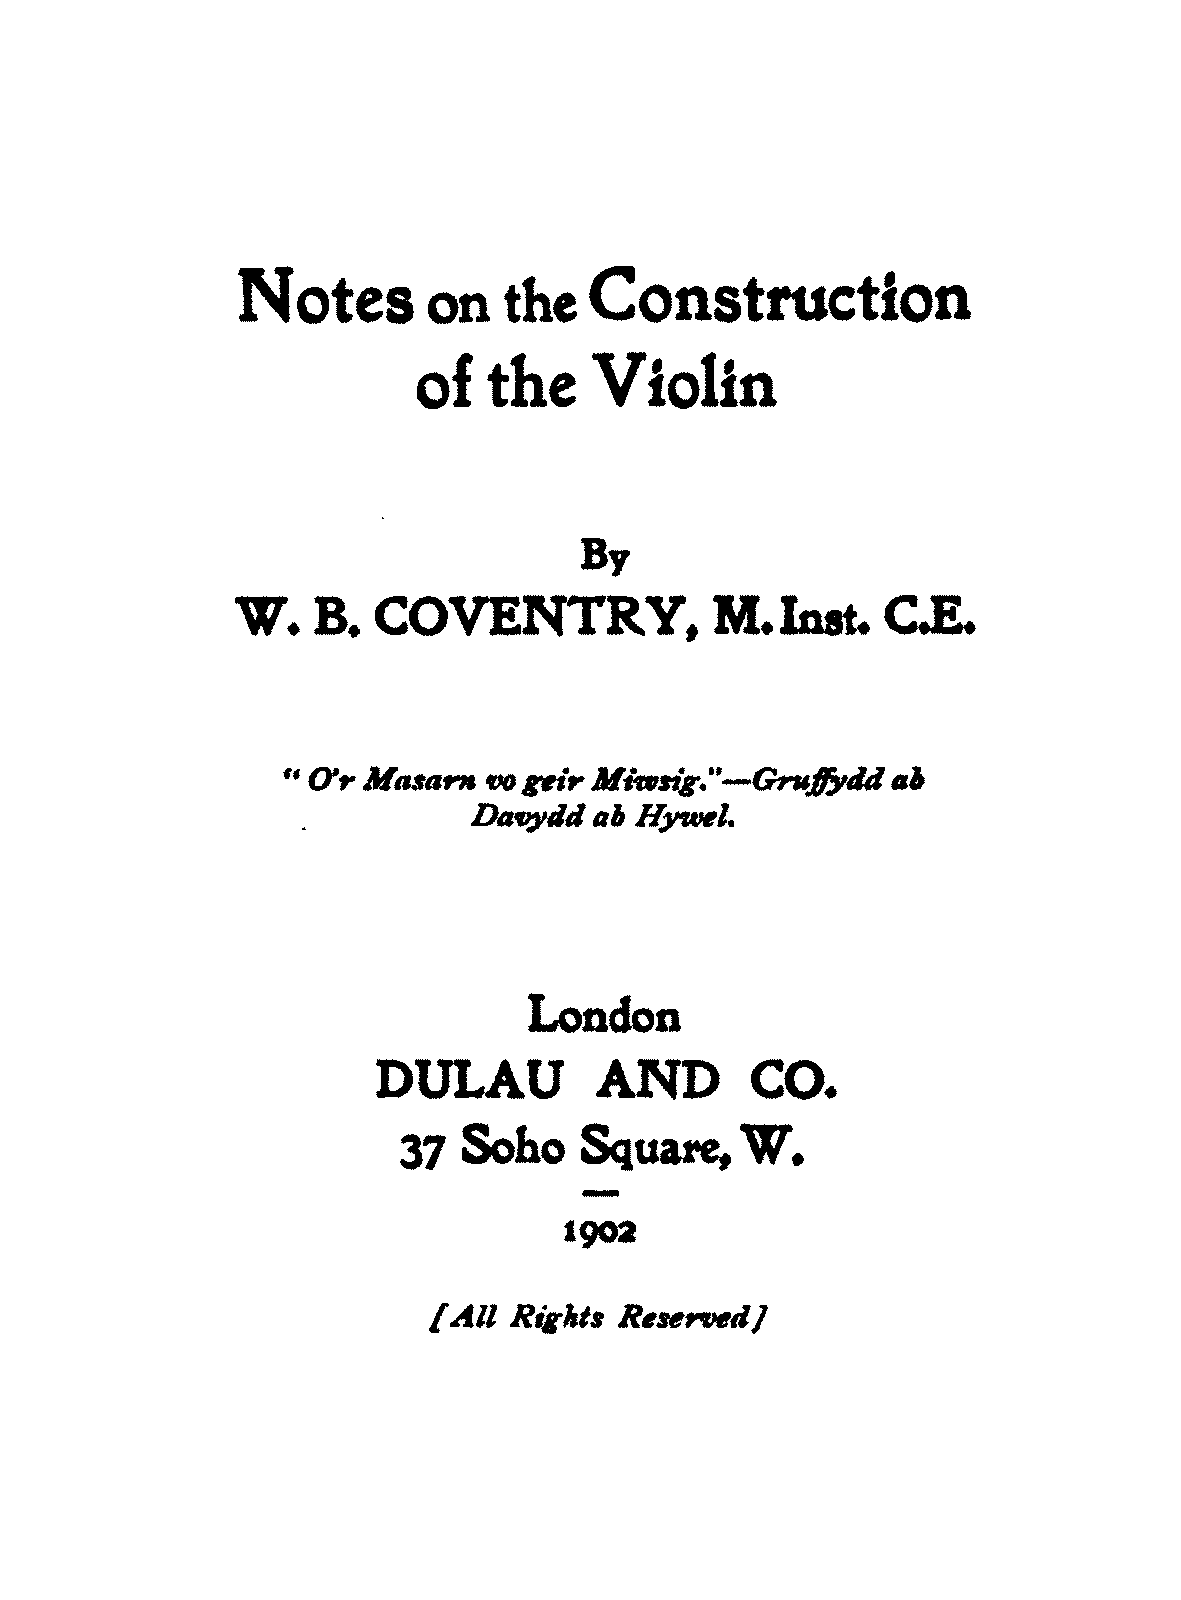 PMLP138736-Coventry Note on costruction of violin.pdf